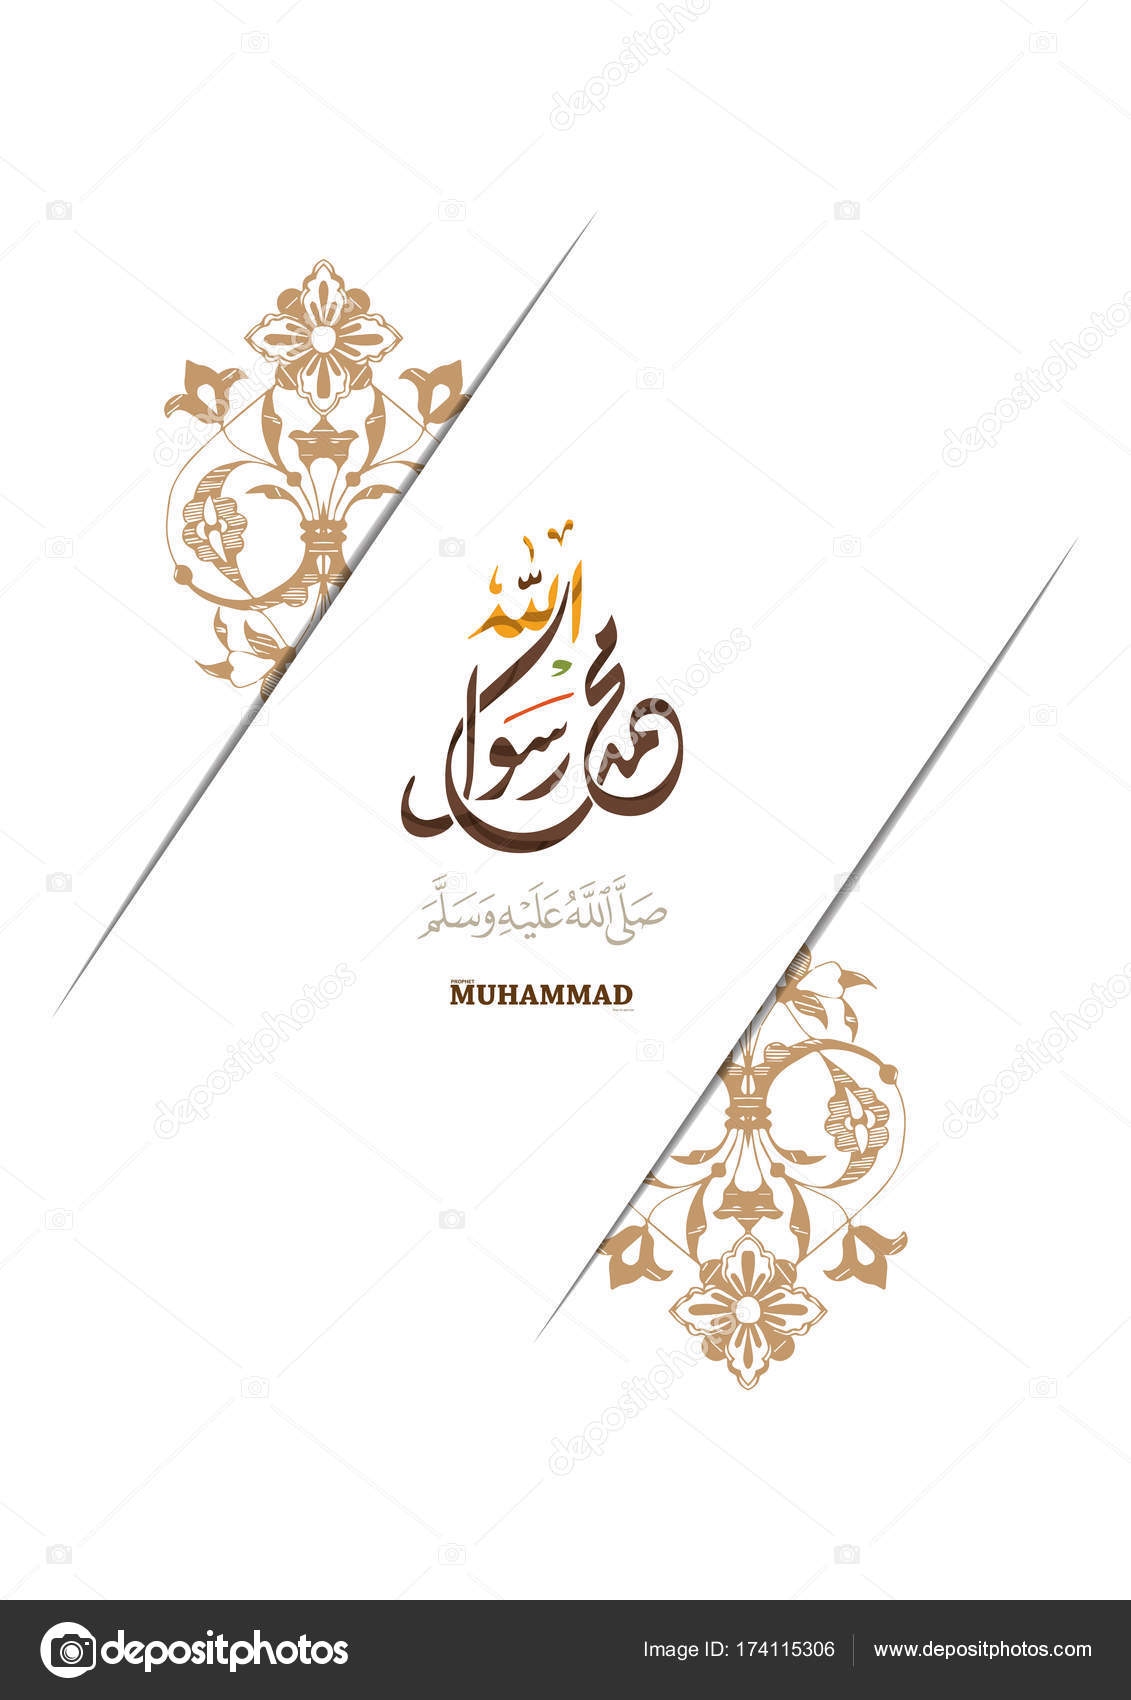 Greeting Cards On The Occasion Of Birthday Prophet Muhammad Vector Arabic Calligraphy Translation